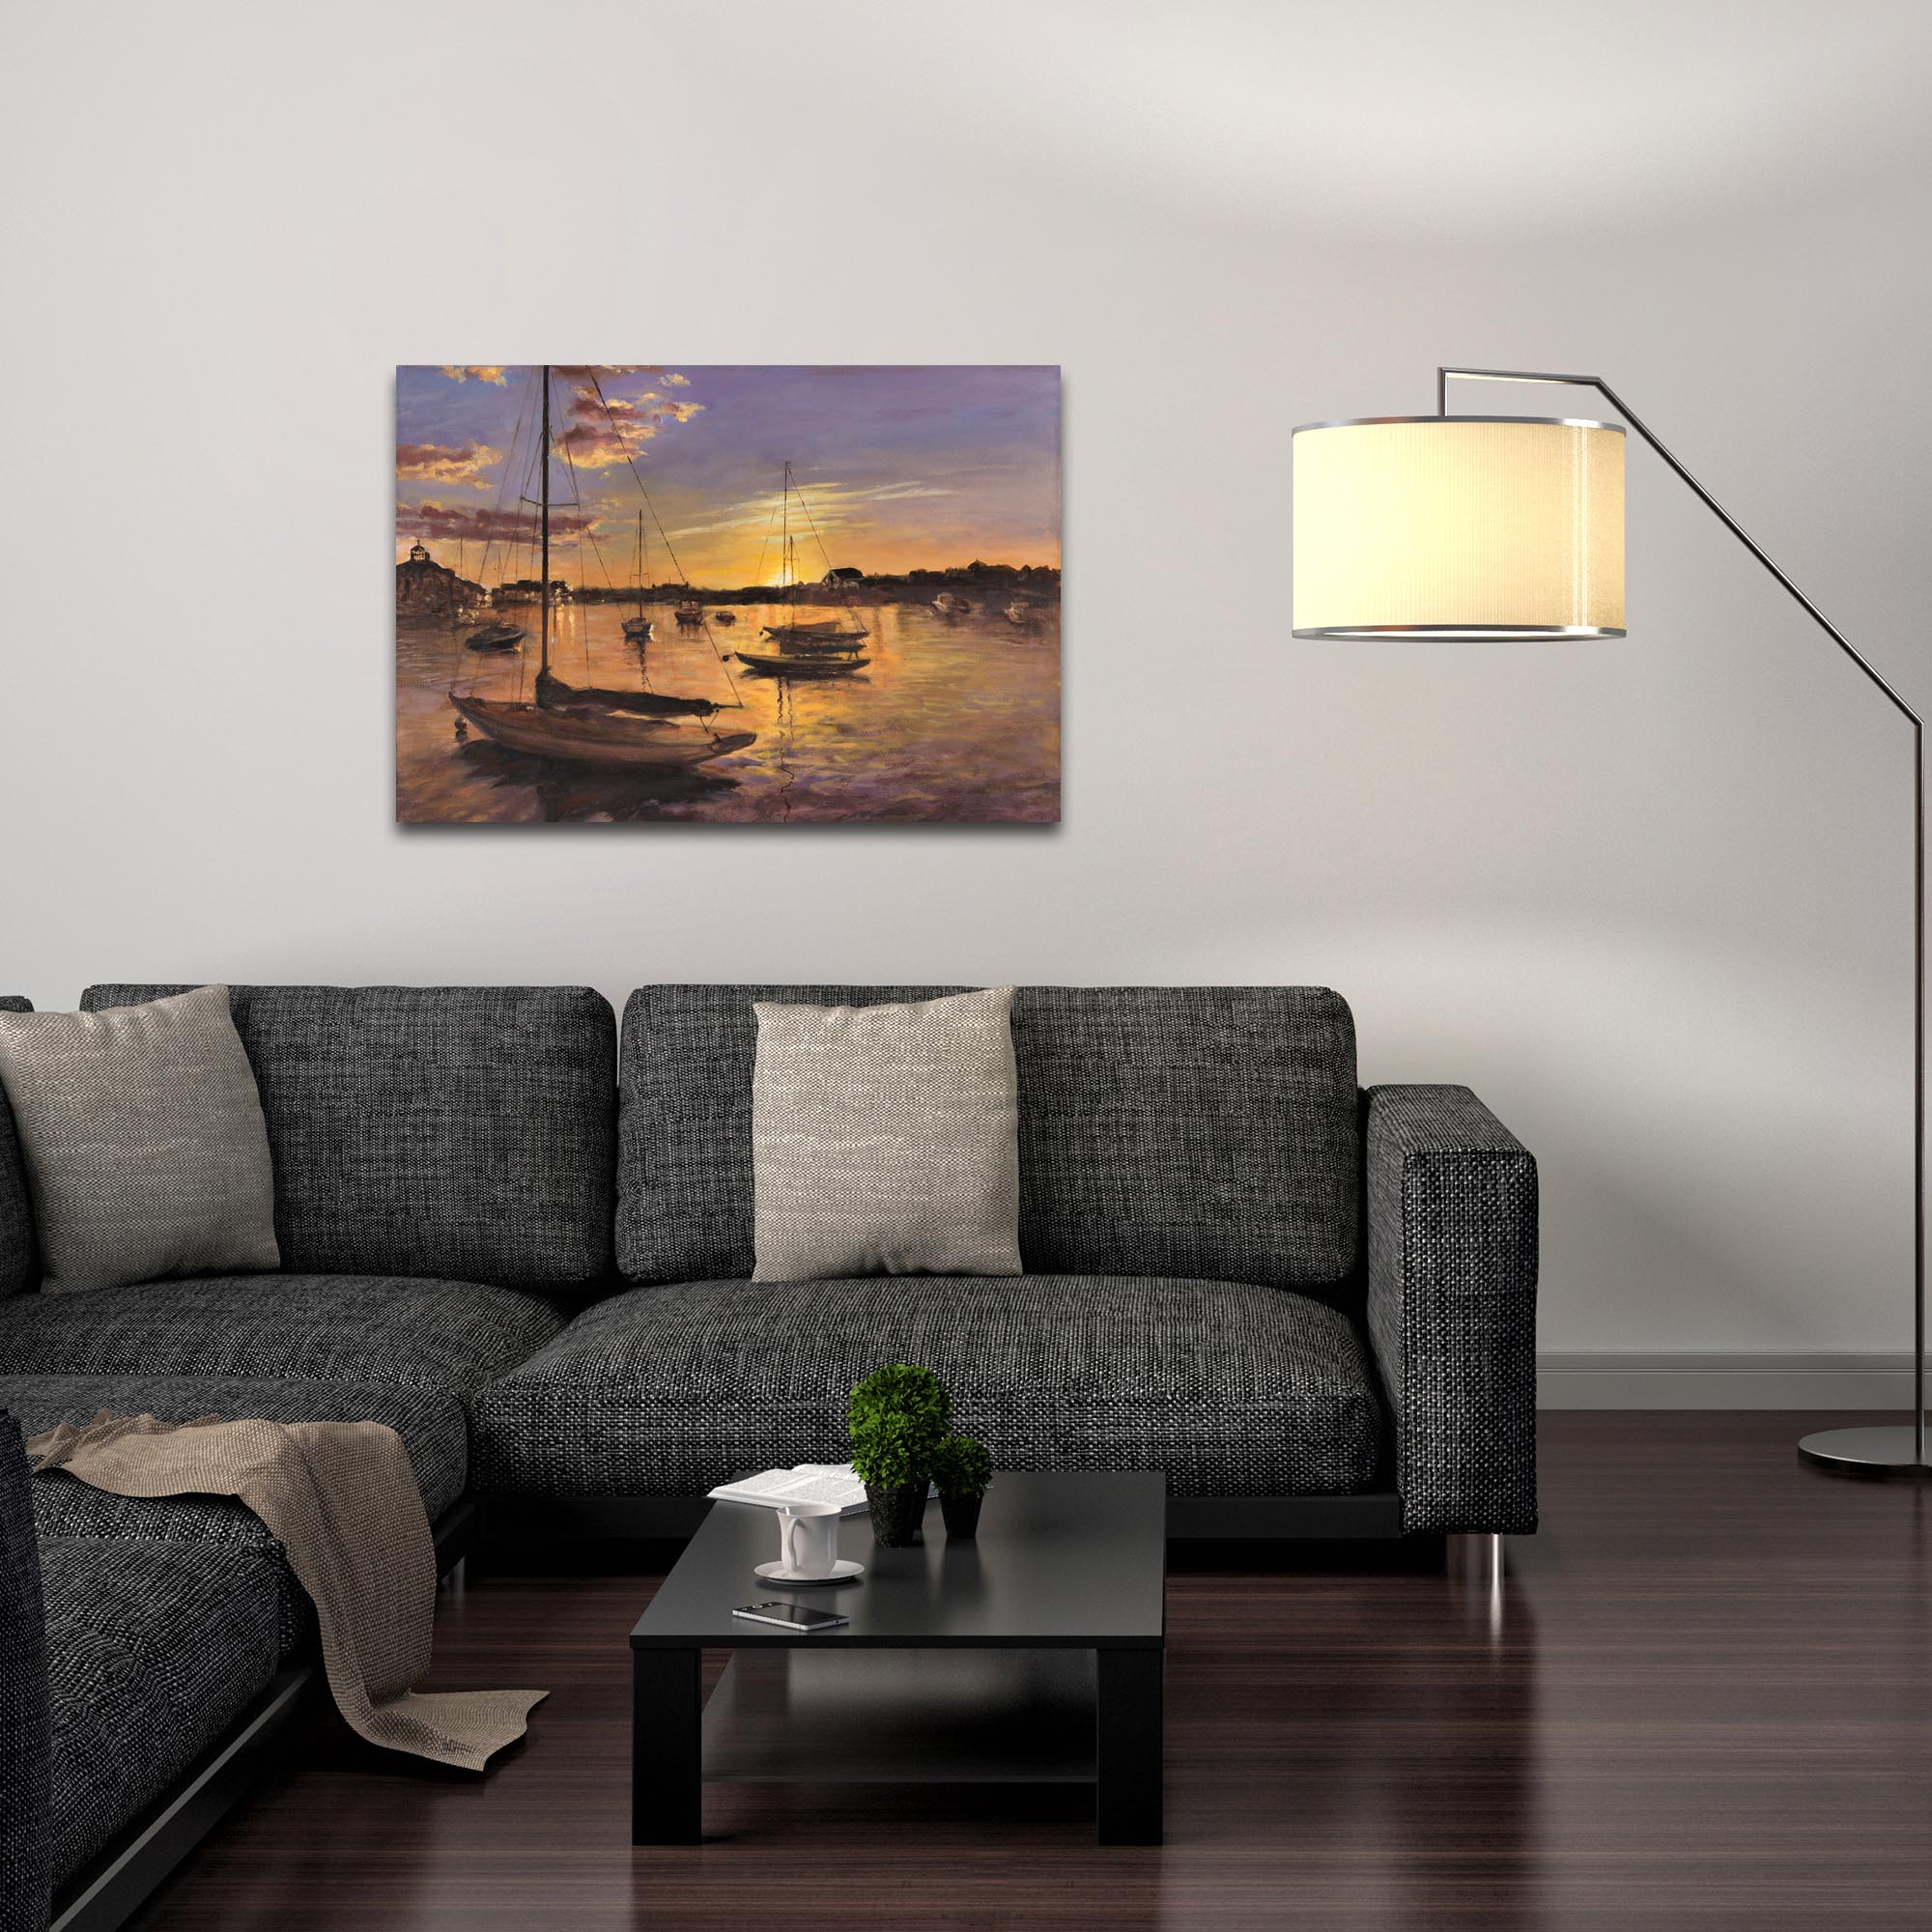 Coastal Wall Art 'Harbor 1' - Boats Decor on Metal or Plexiglass - Lifestyle View